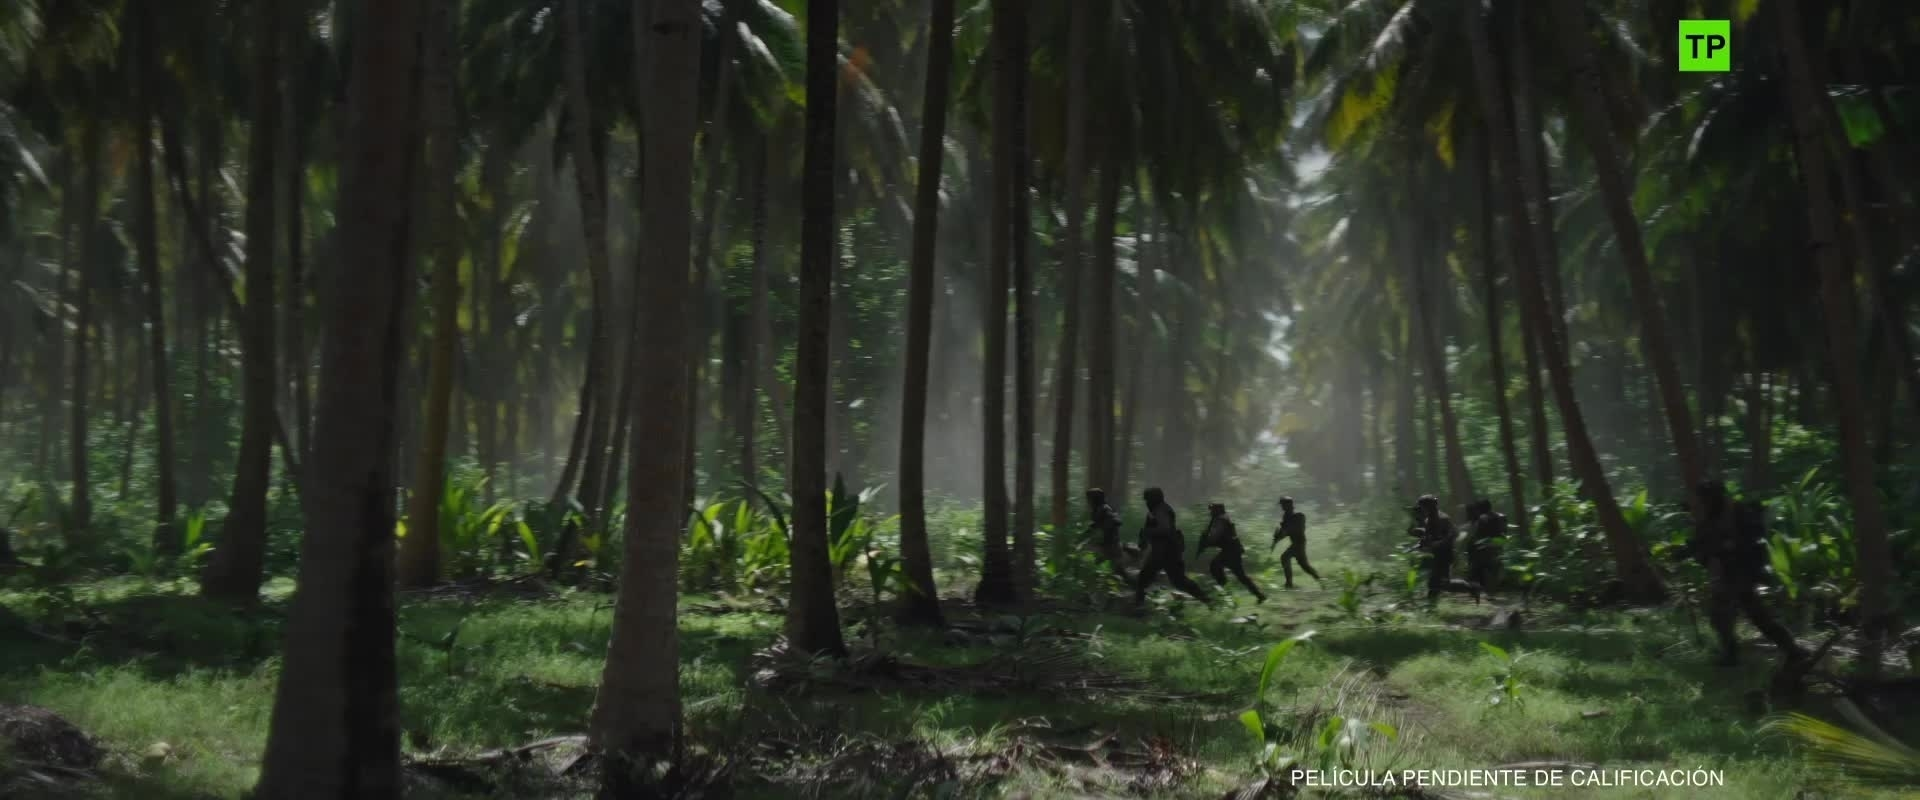 Rogue One: Una historia de Star Wars - Tráiler Final